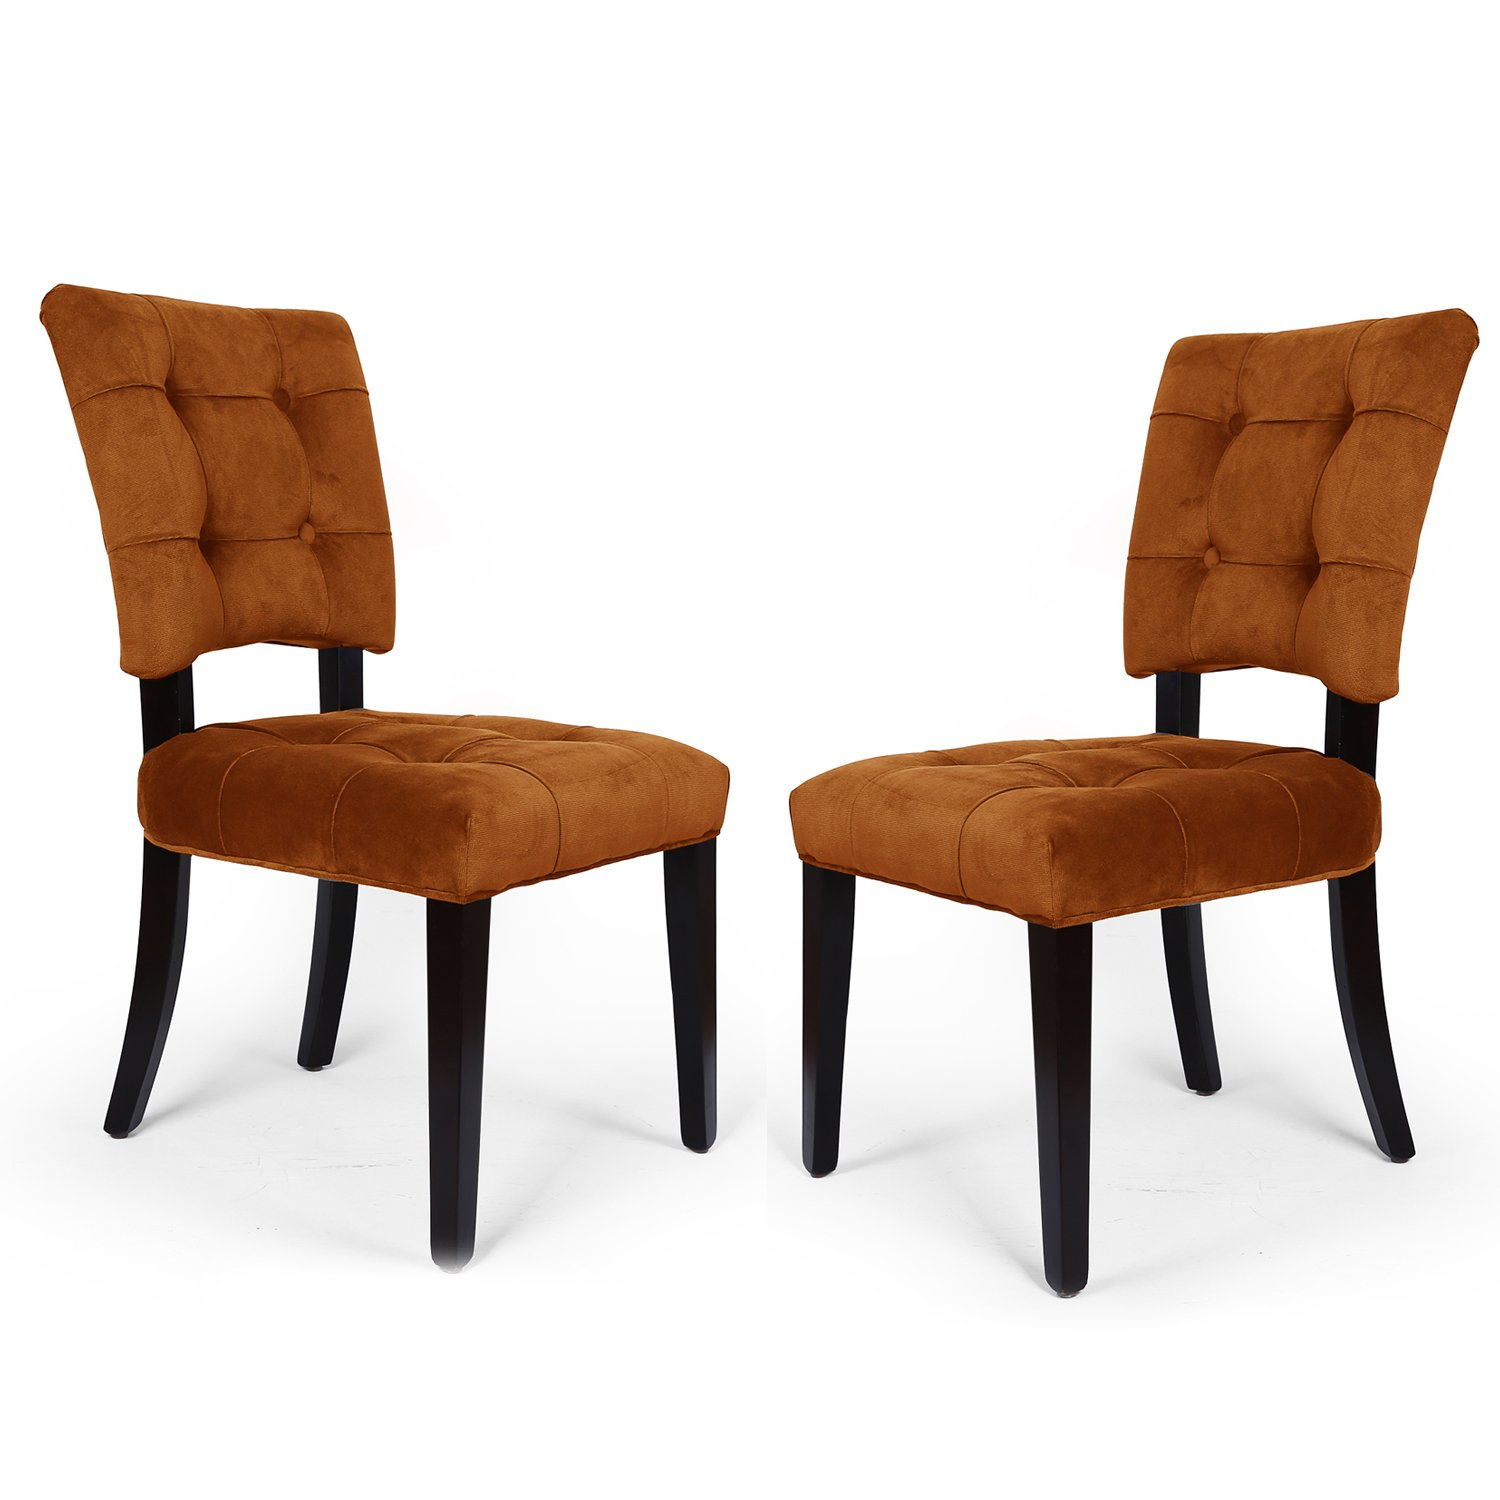 Dining Chair Set 2 Pair Accent Tufted Kitchen Modern Side: Adeco Side/ Dining Velvet Dining Chair With Solid Wood